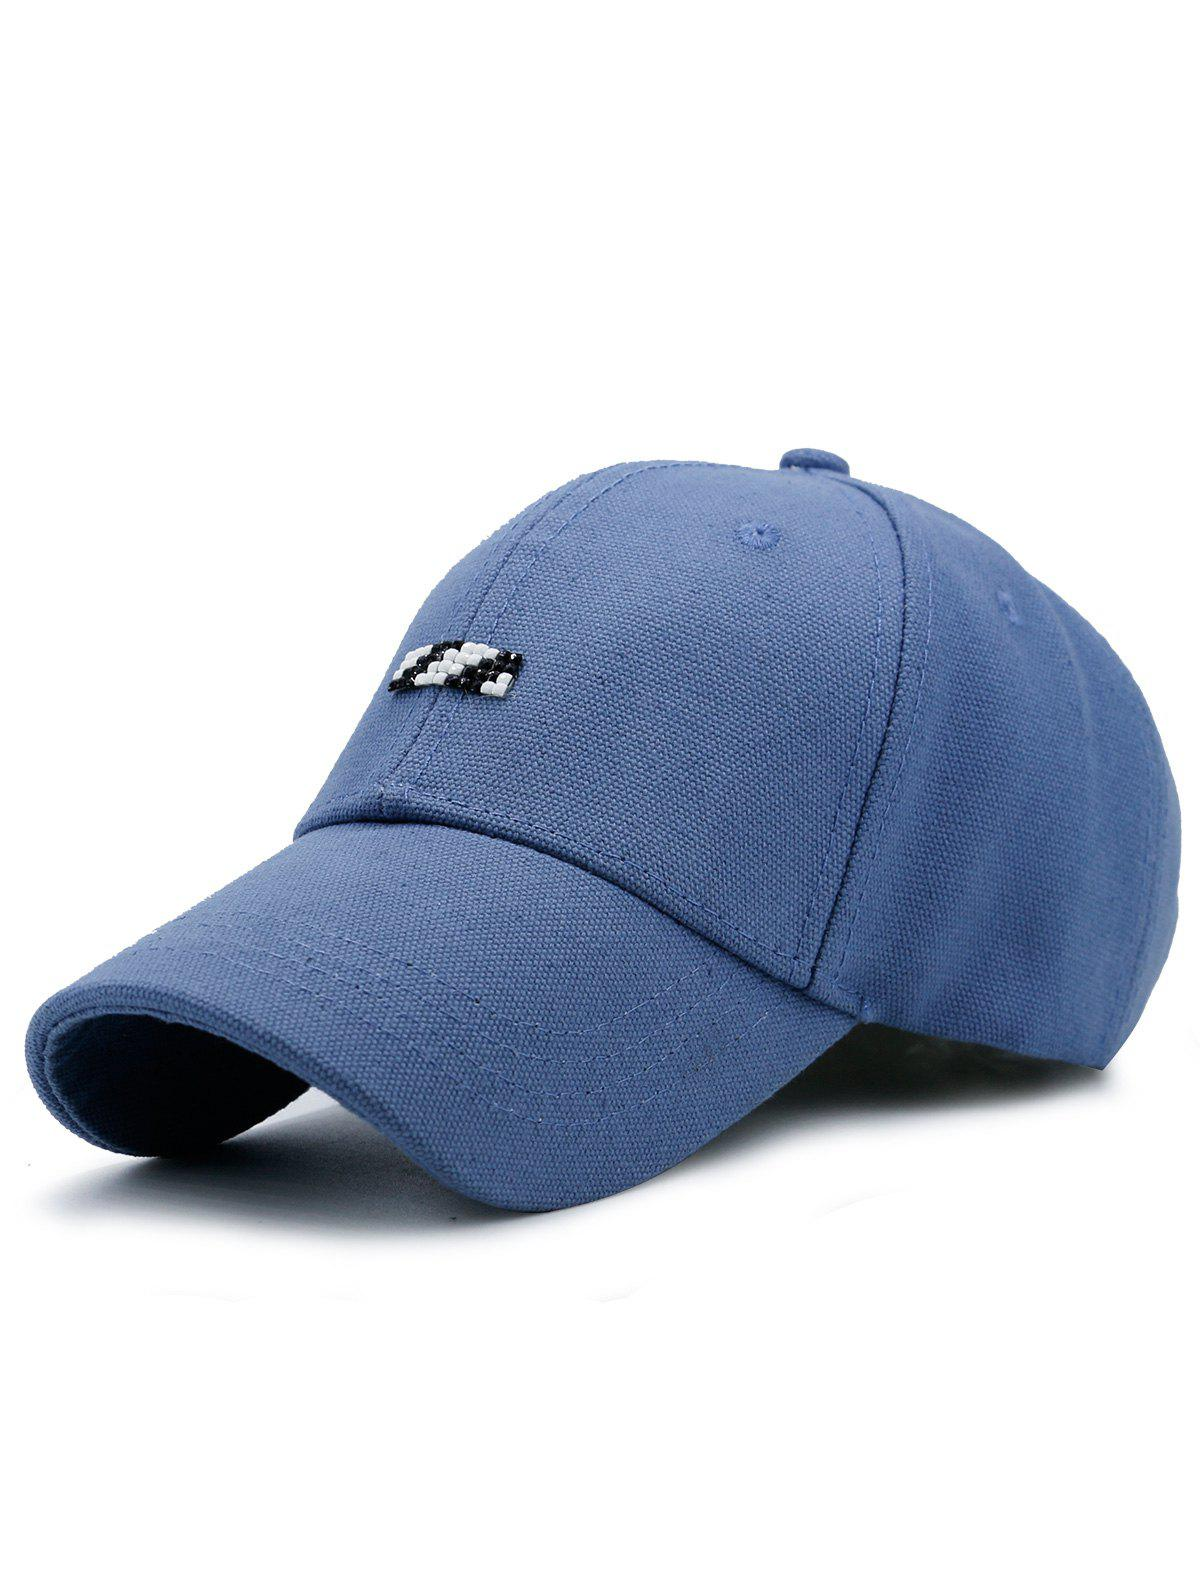 Baseball Hat with Tiny Rectangle Patchwork - BLUE